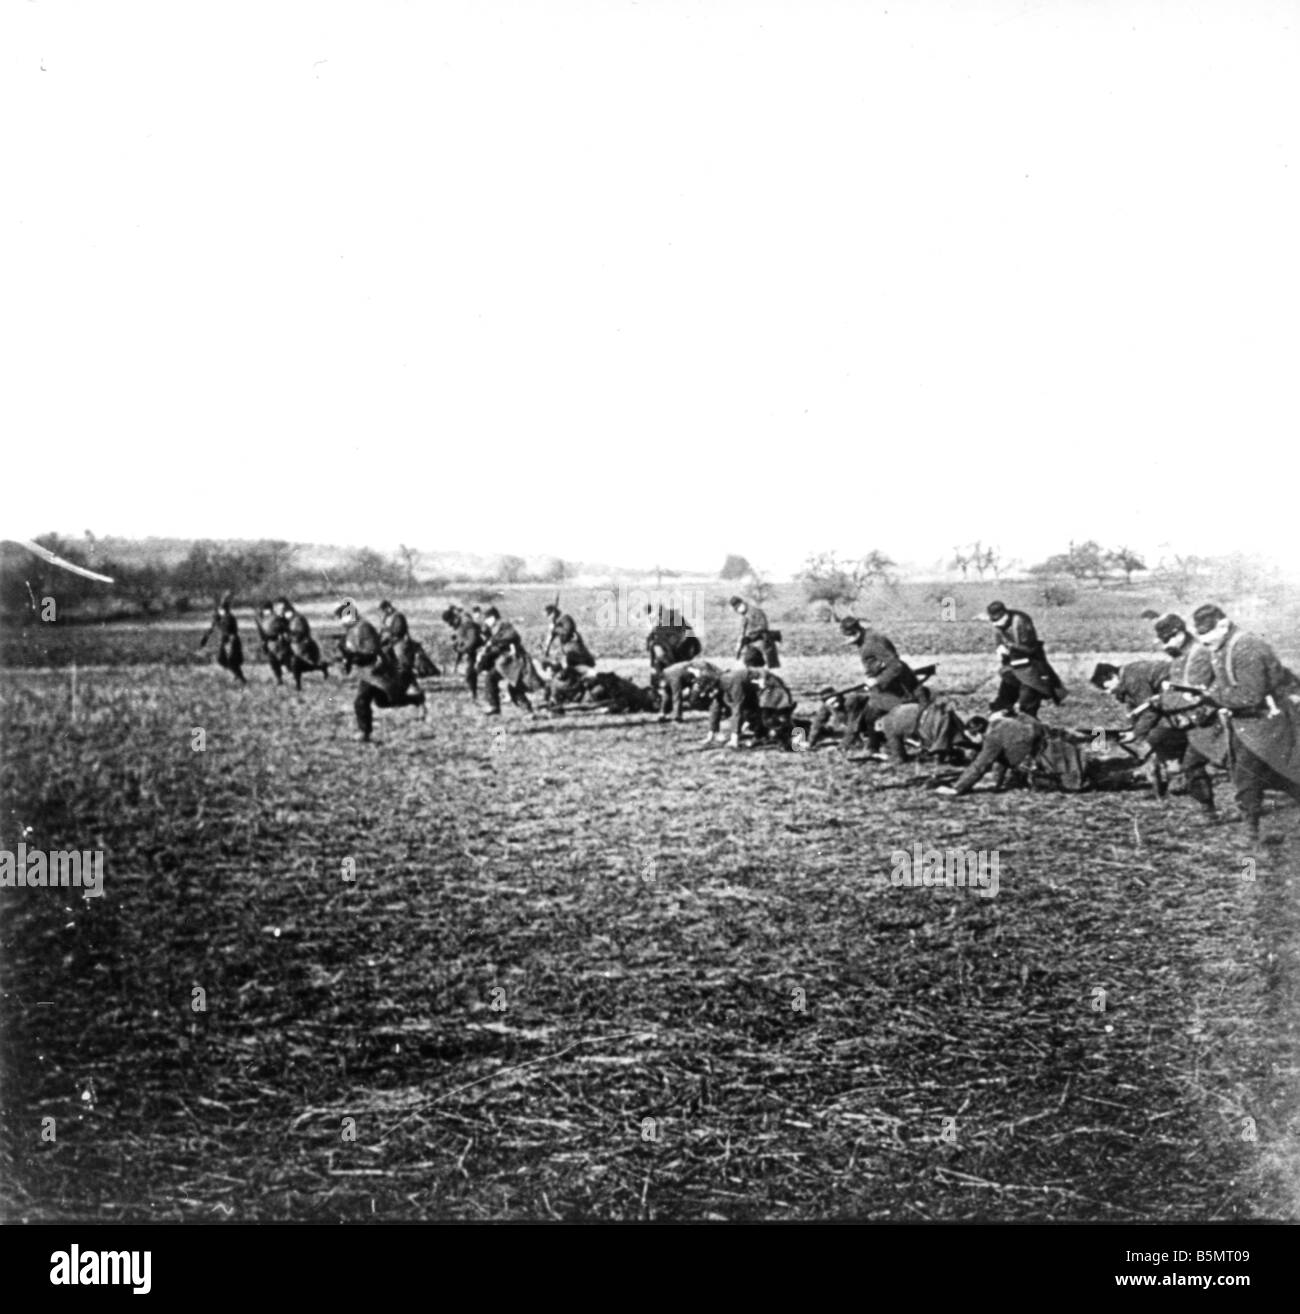 9FK 1914 9 5 A2 E The Marne Sept 1914 French assault World War I 1914 18 France Battle of the Marne 5th 12th Sept - Stock Image